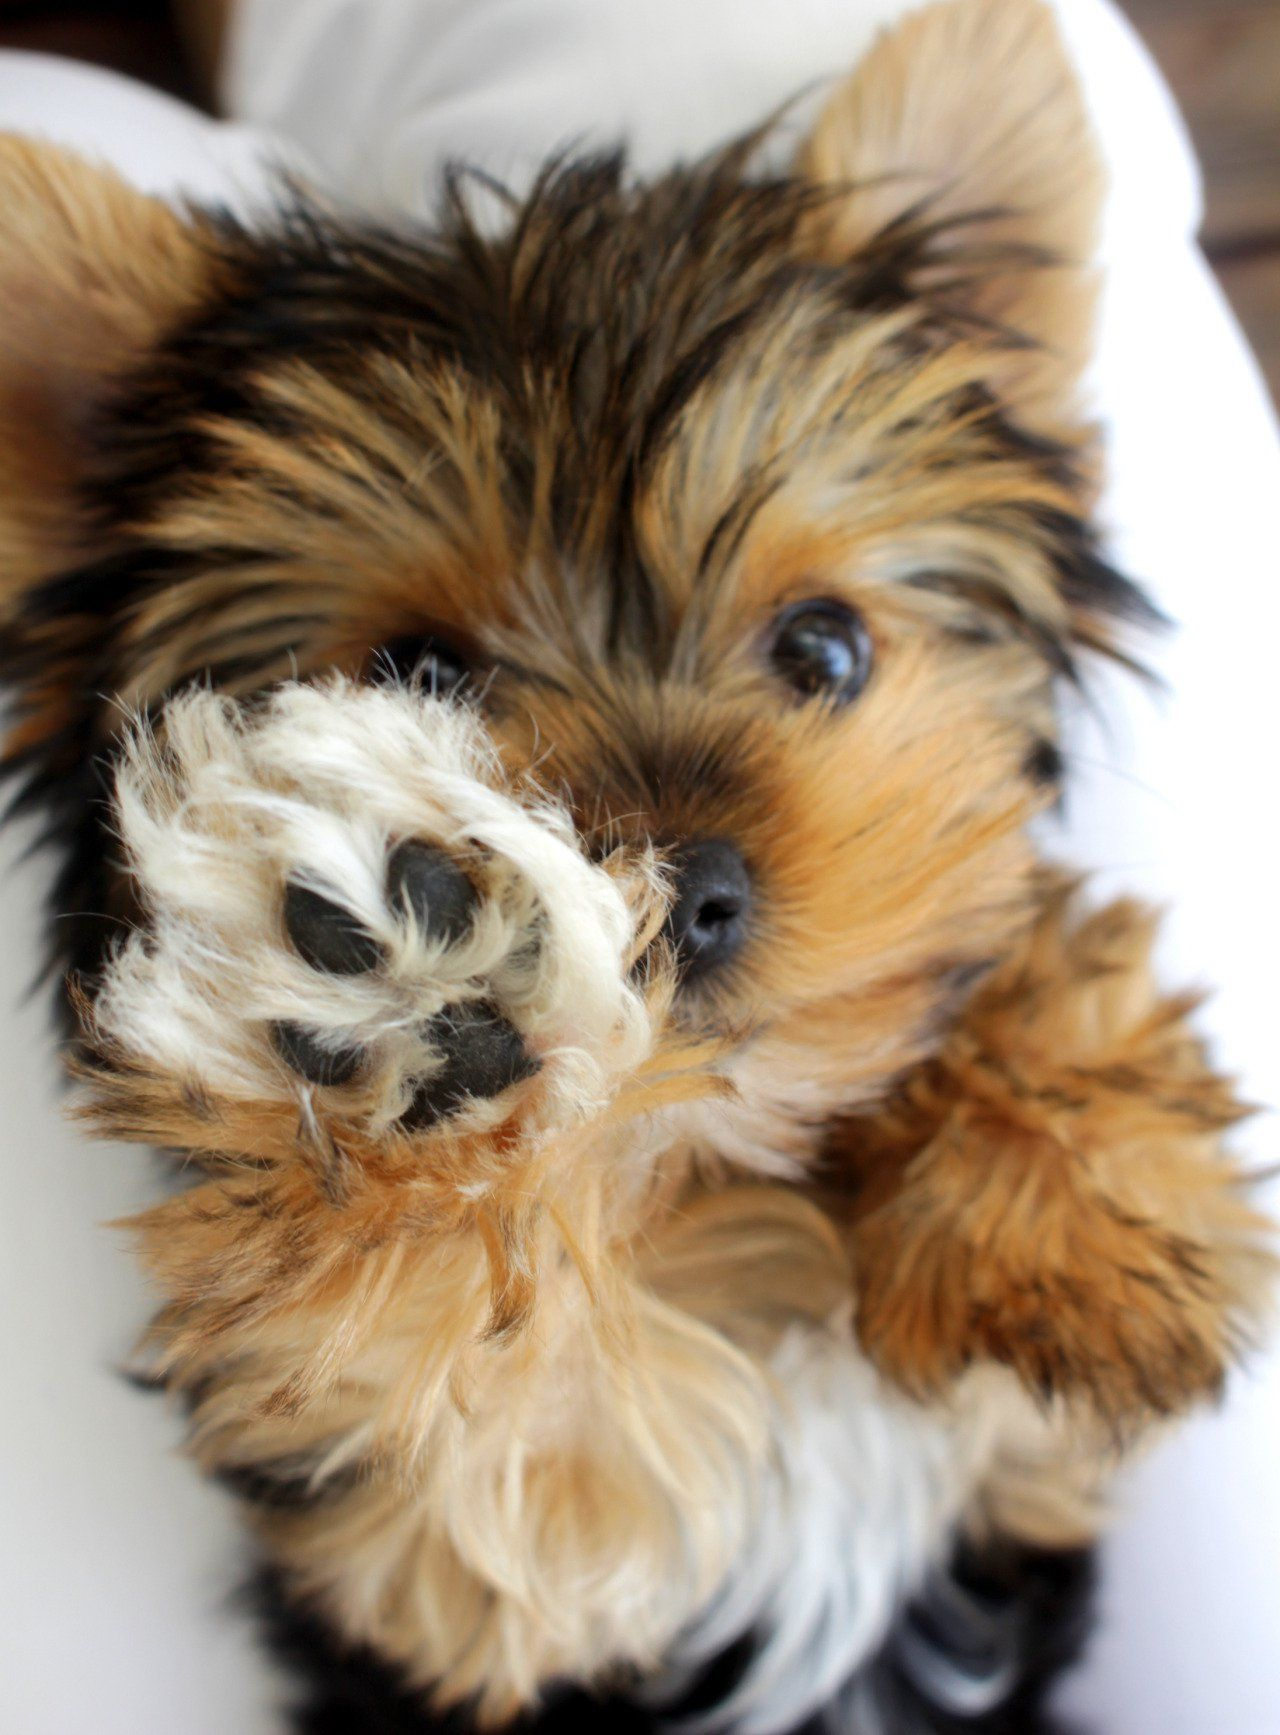 The Daily Cute Yorkies to Happiness Hypoallergenic dog